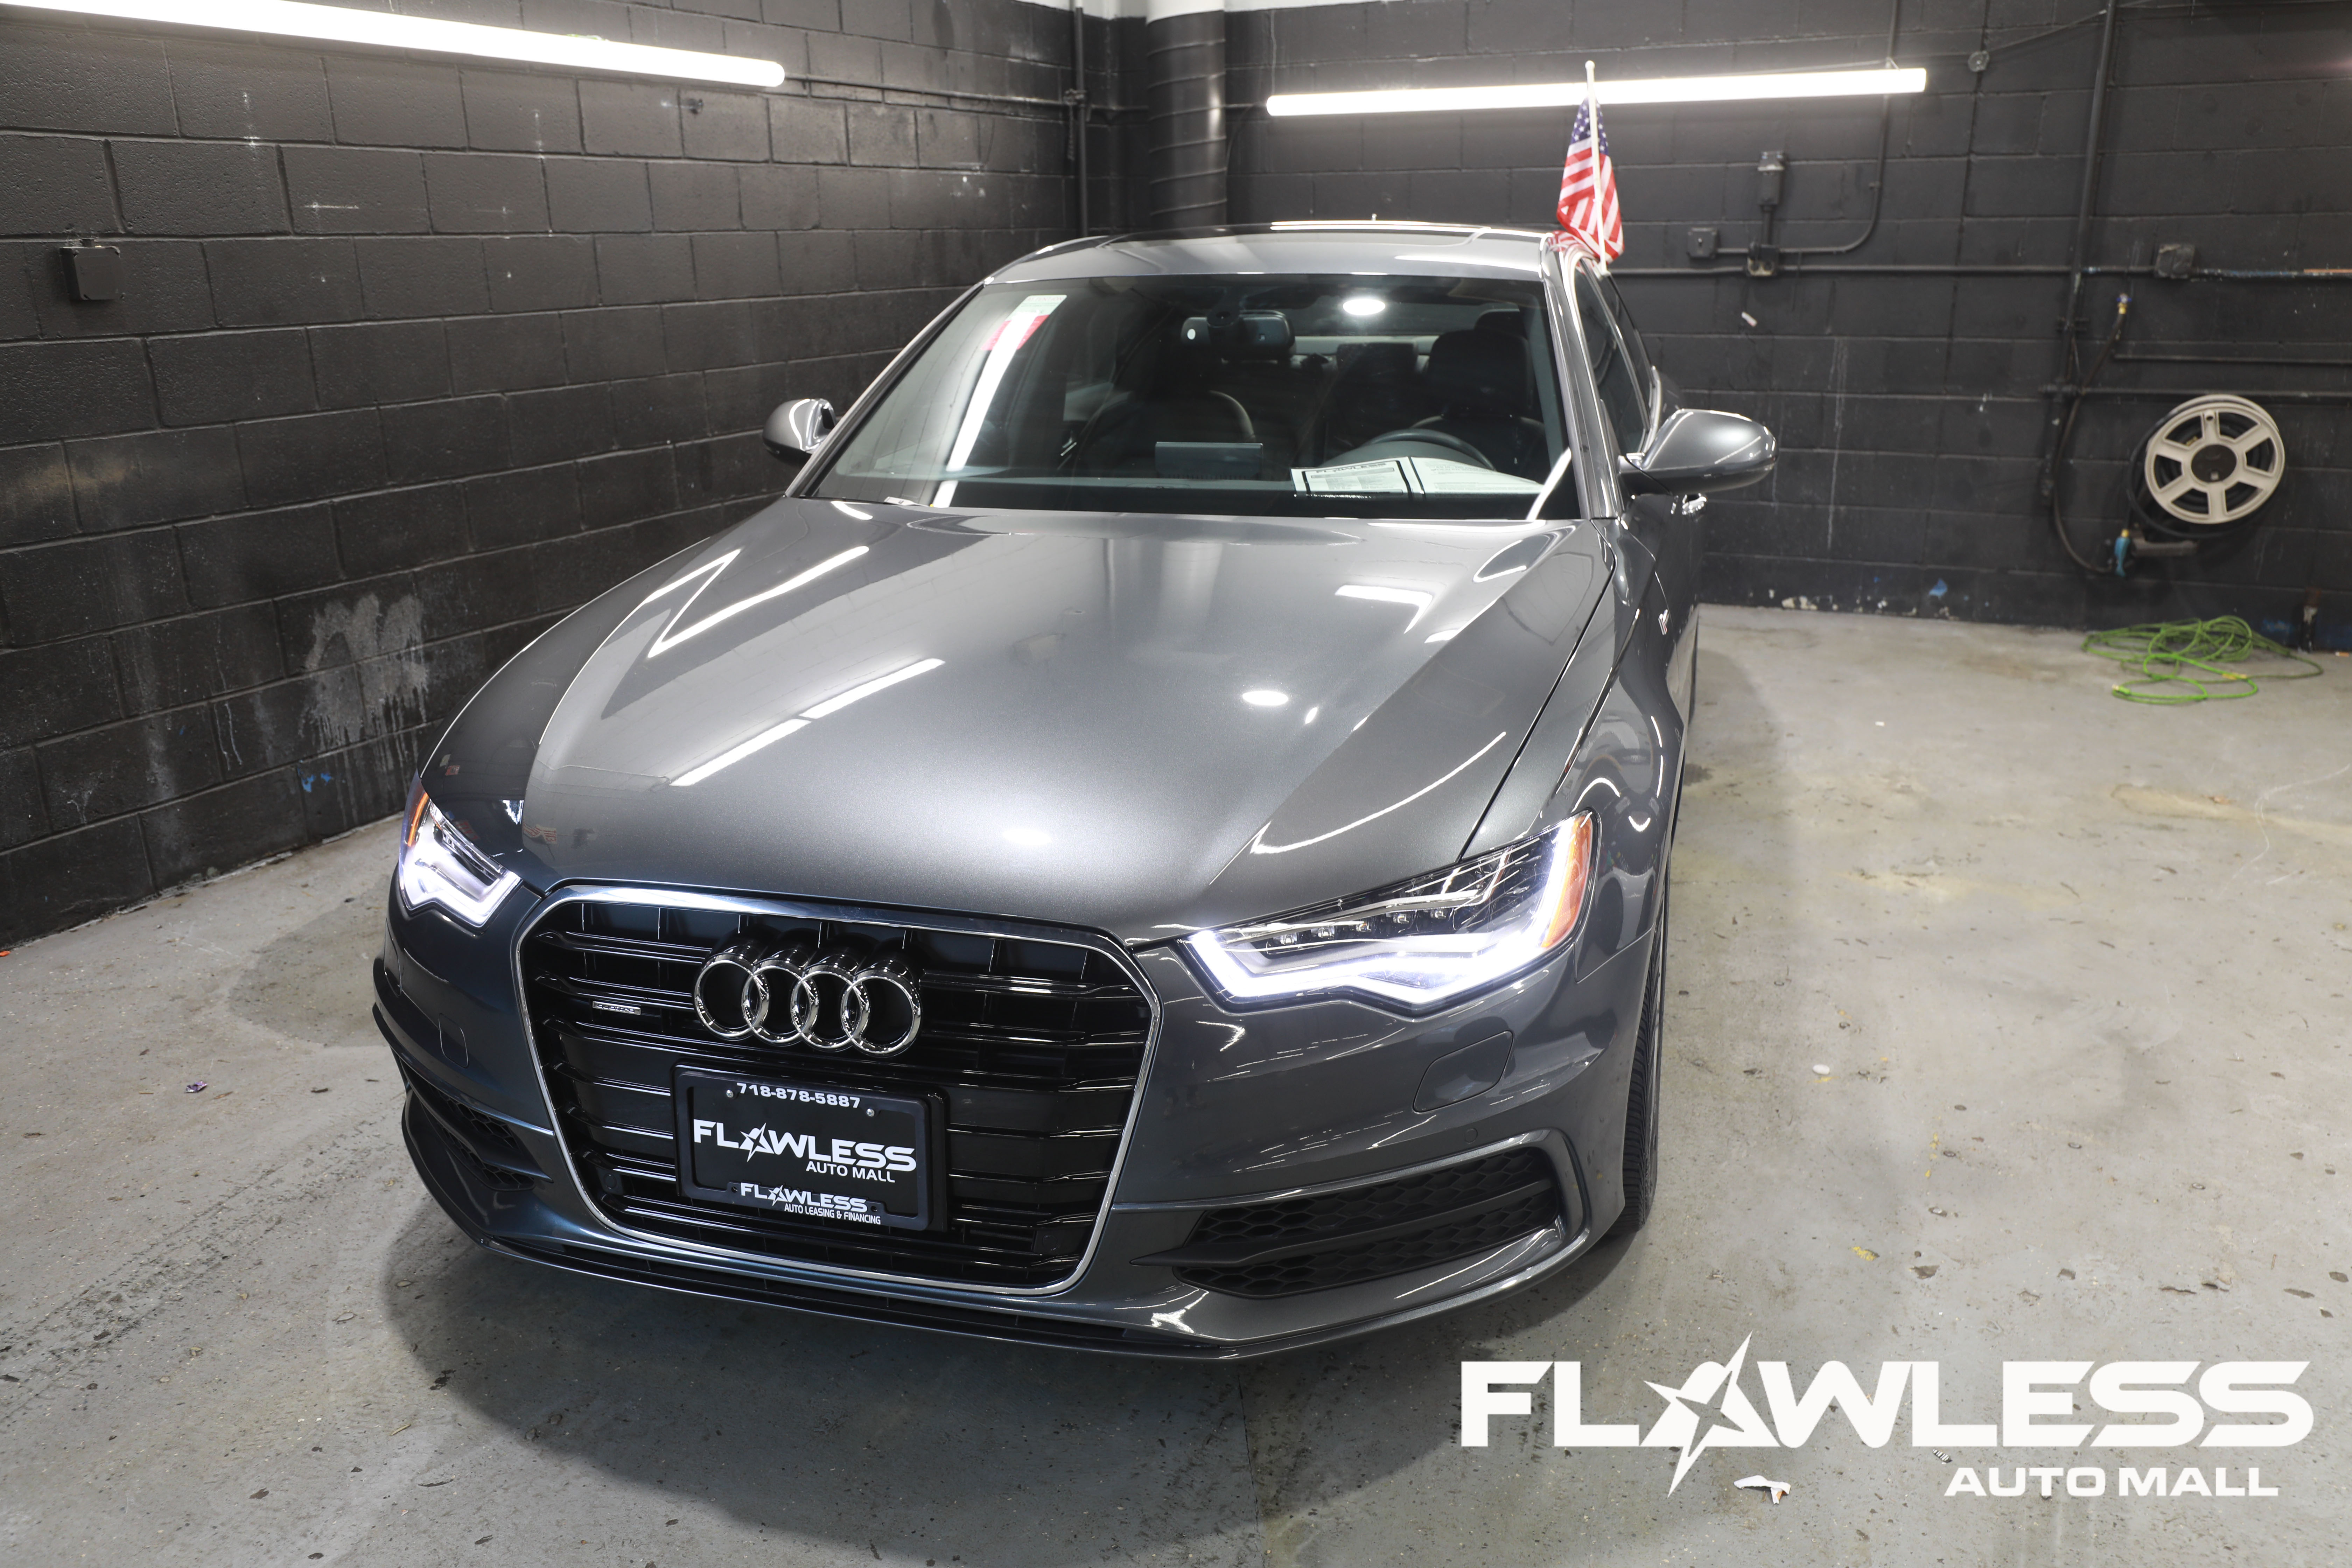 Pre-Owned 2015 Audi A6 3.0T quattro Premium Plus